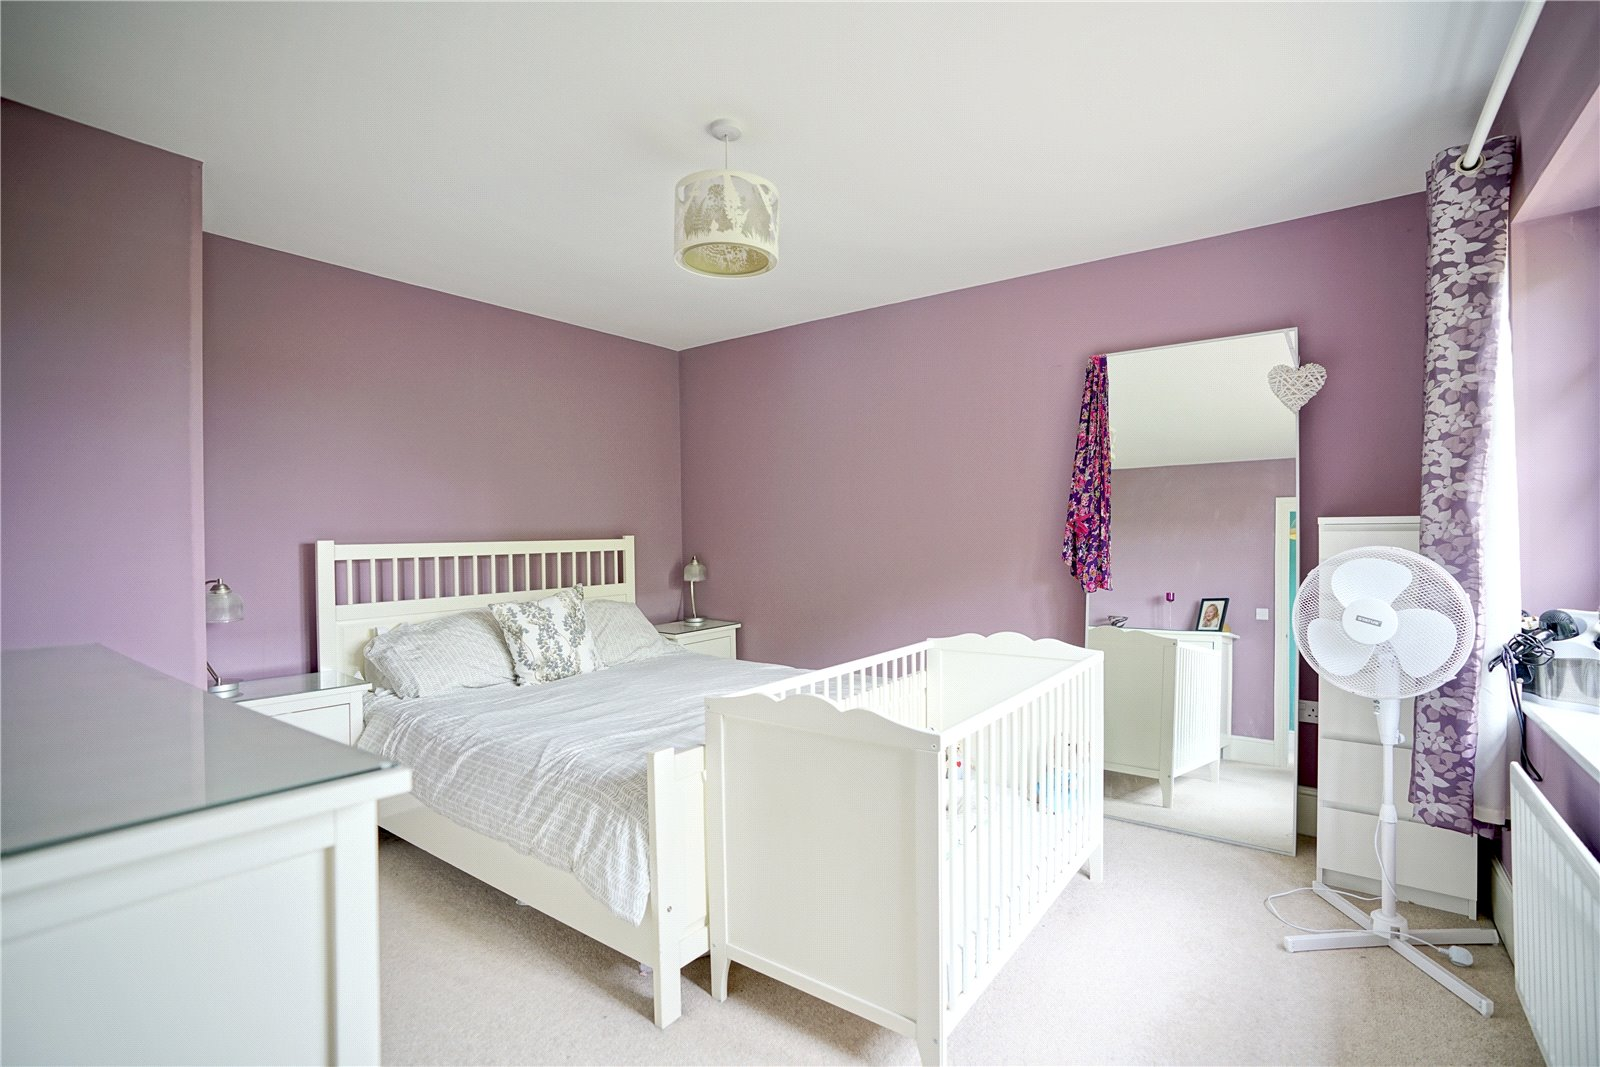 4 bed house for sale in Field Gate Close, St. Neots  - Property Image 10